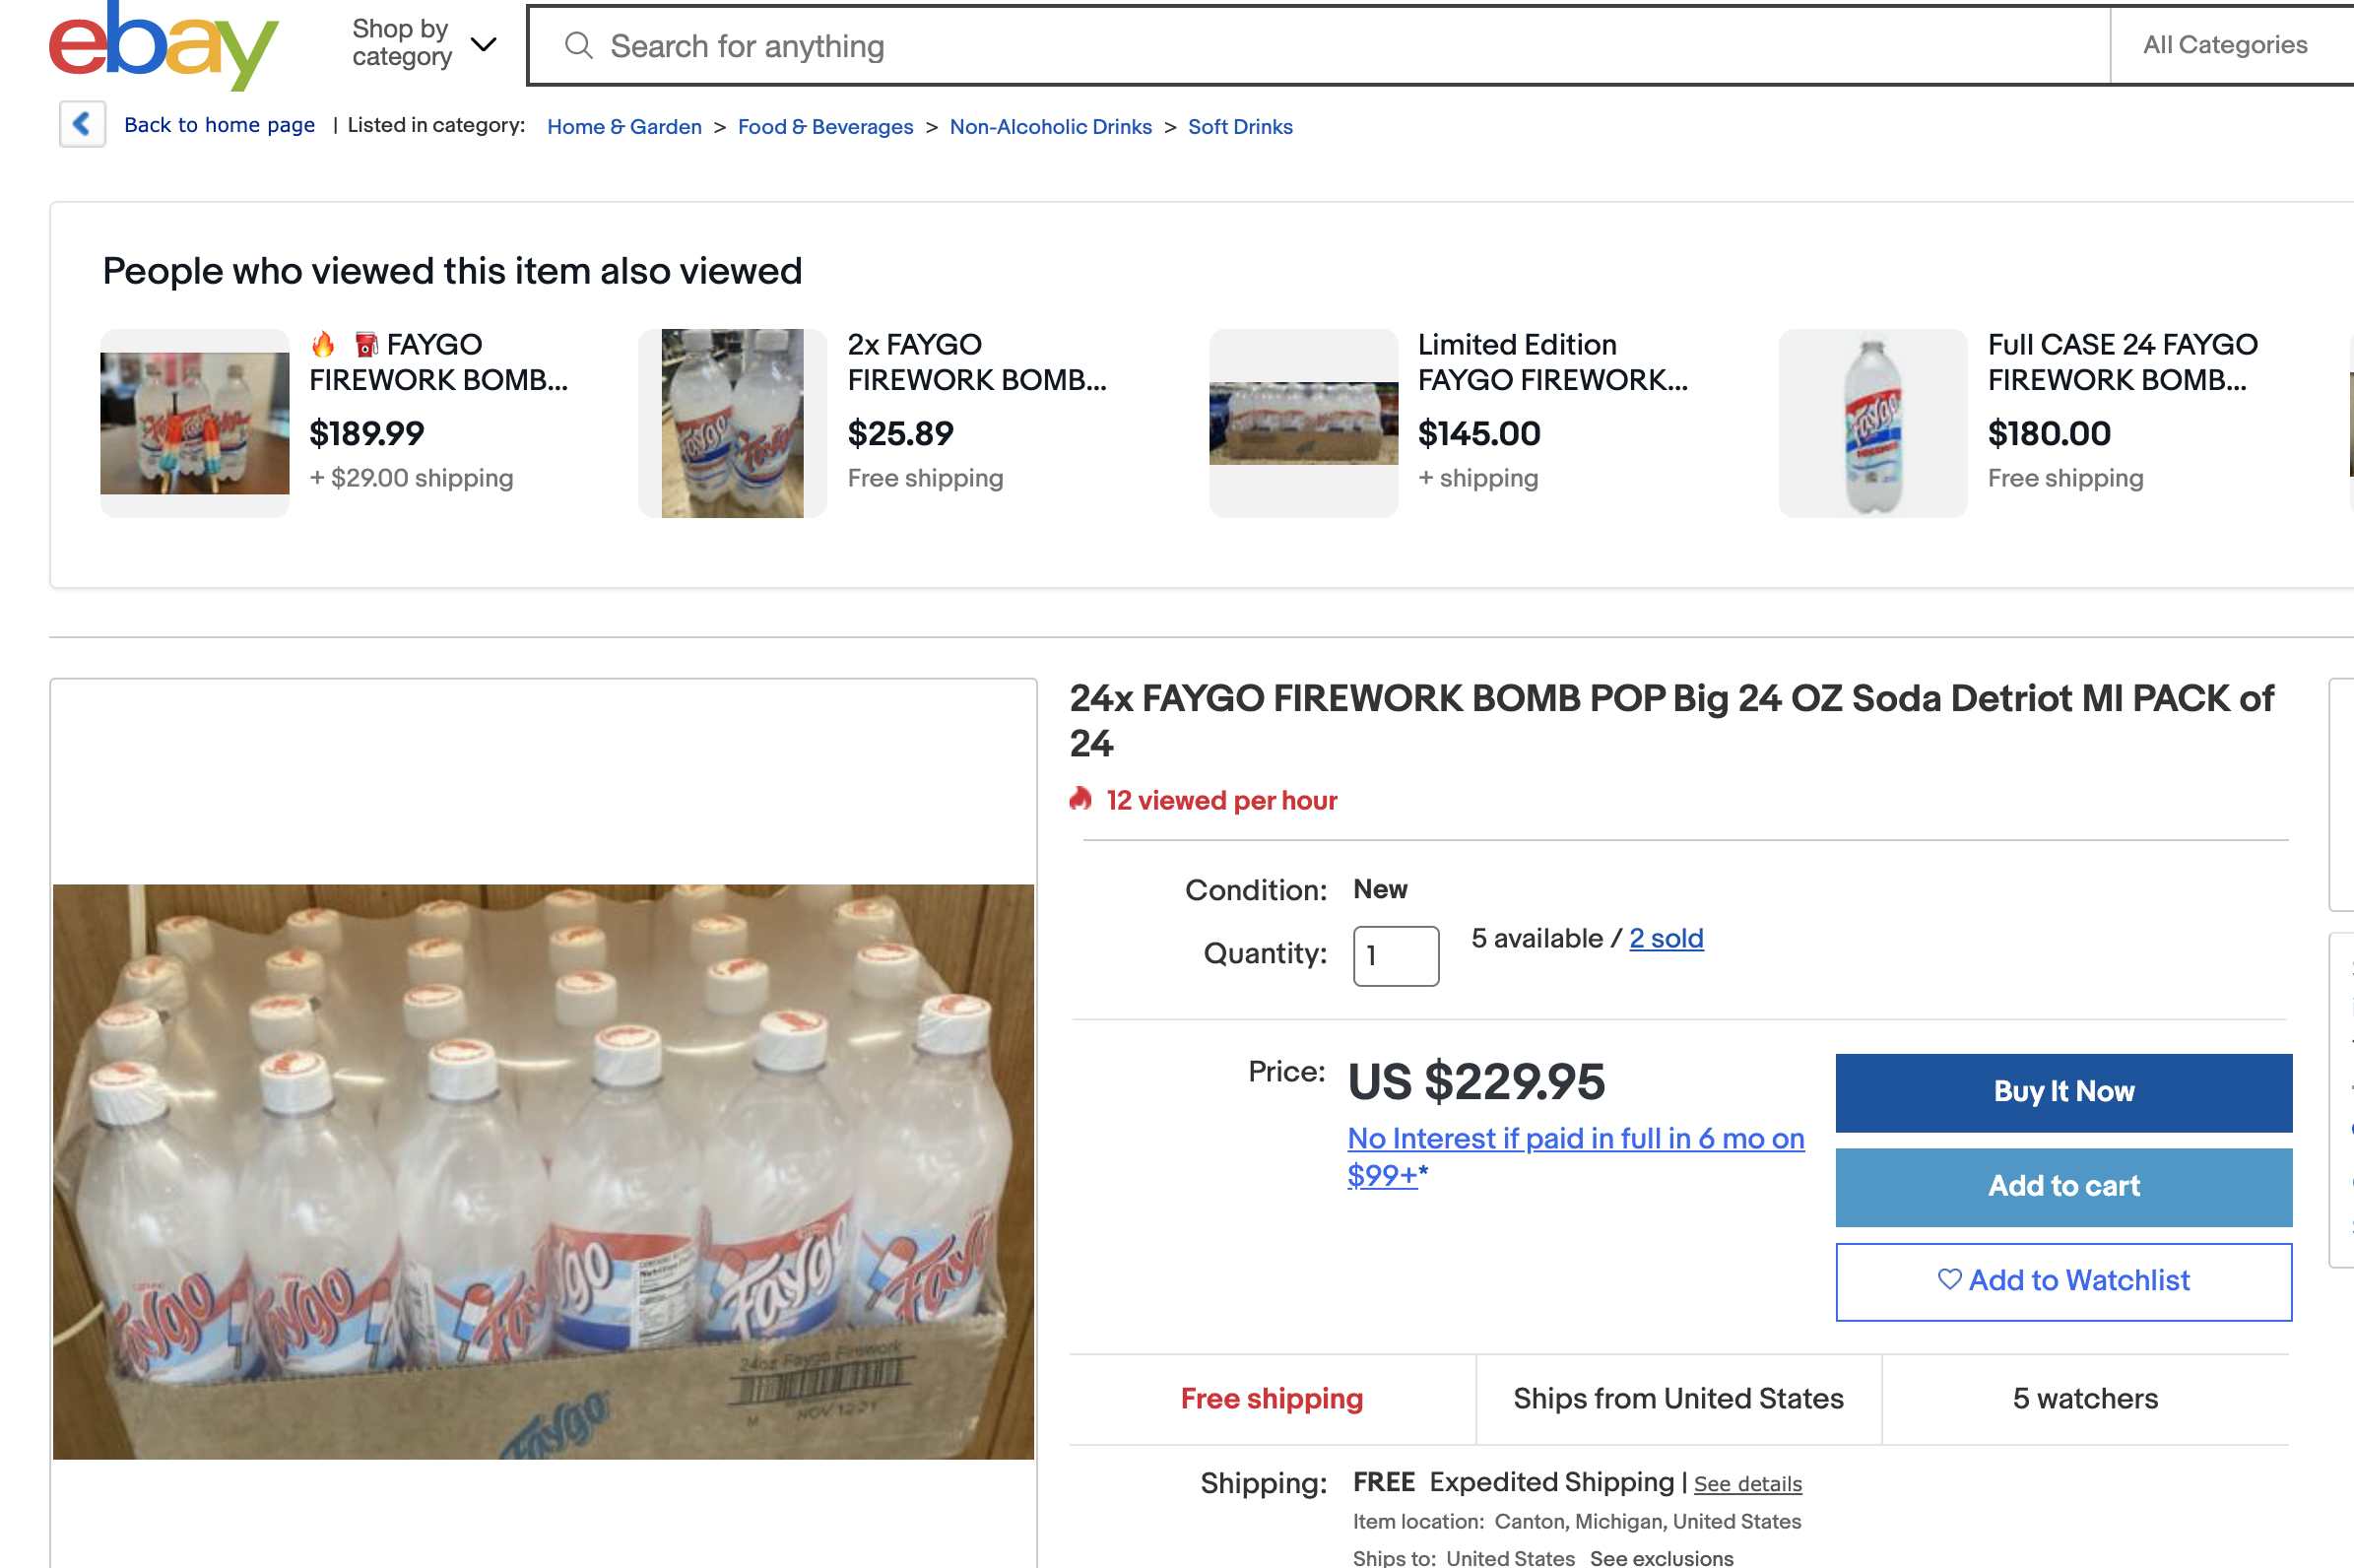 A screenshot of a case of Faygo on eBay for $229.95.